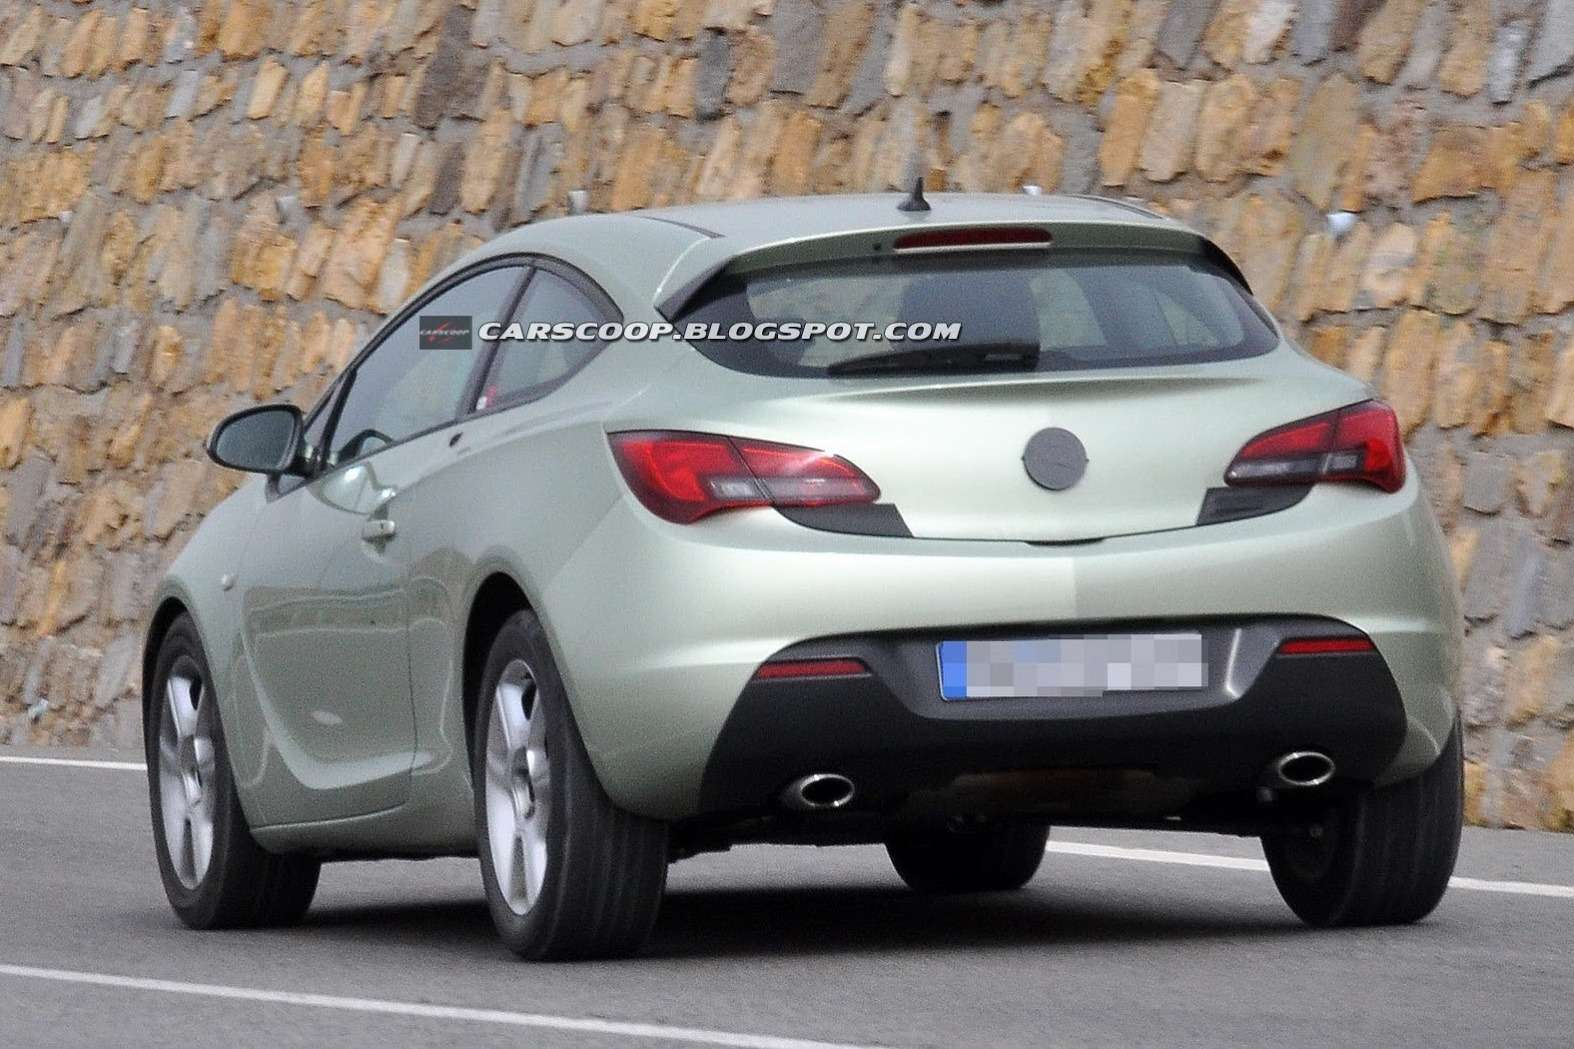 Facelifted Opel Astra GTC test prototype side-rear view_no_copyright